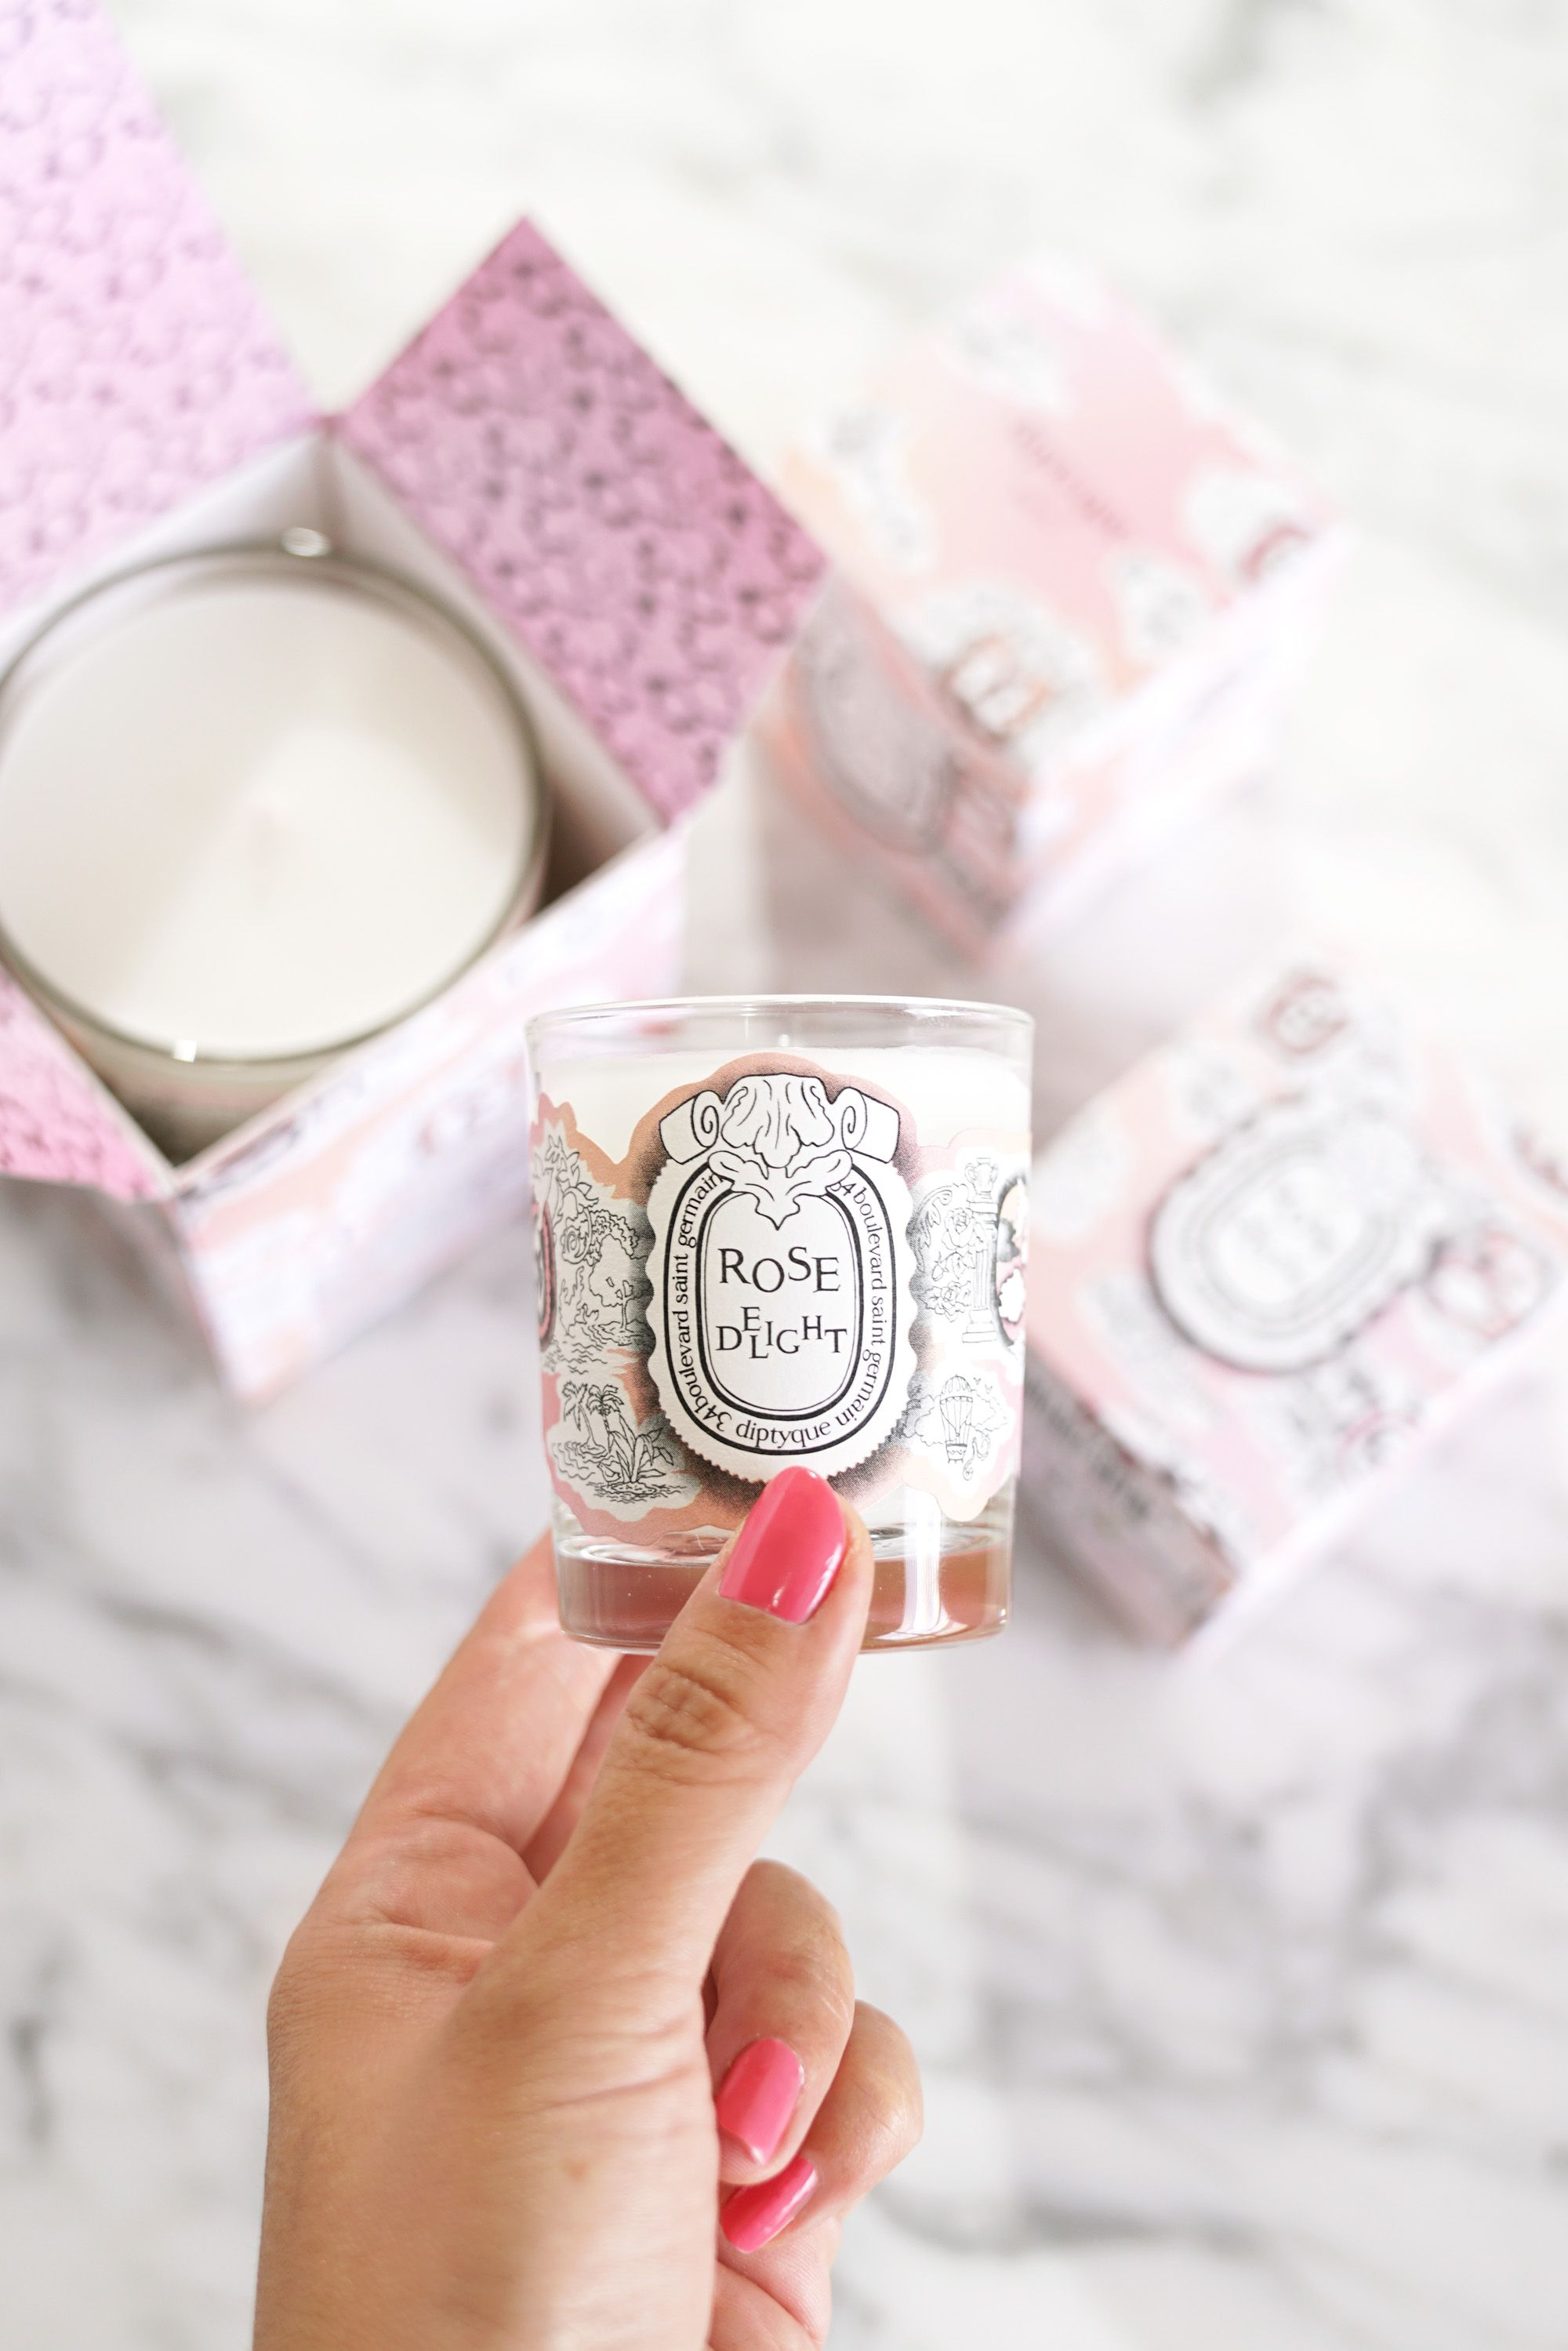 DIPTYQUE FRANCE SET LARGE 6,5 Oz 190 g FIG TREE CANDLE /& FIGUIER OVAL SCENT